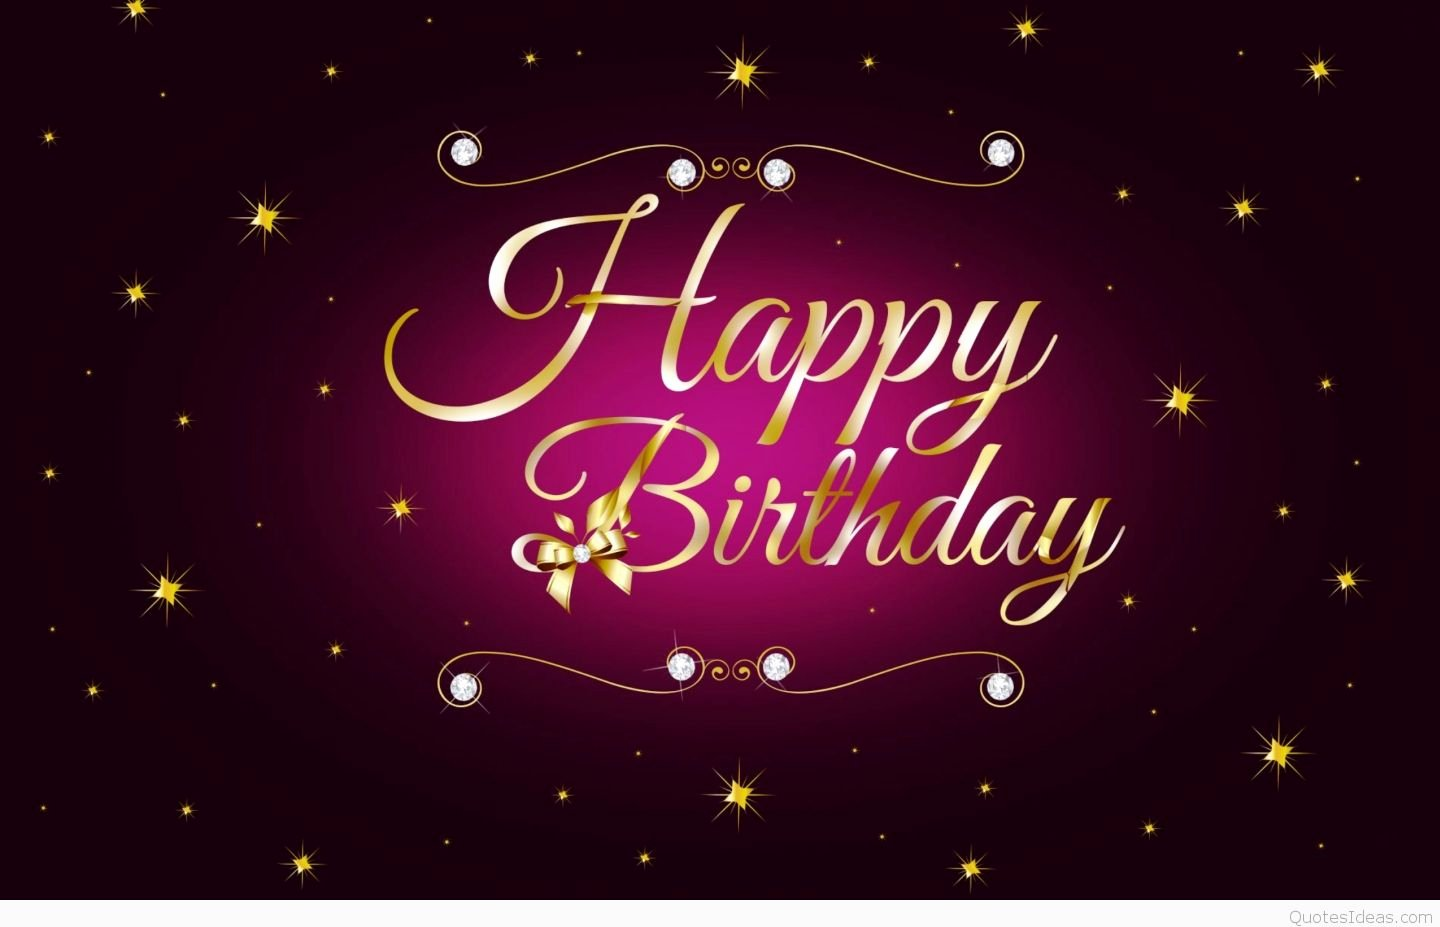 Free Downloads Happy Birthday Images Lovely Happy Birthday Wallpapers Quotes and Sayings Cards